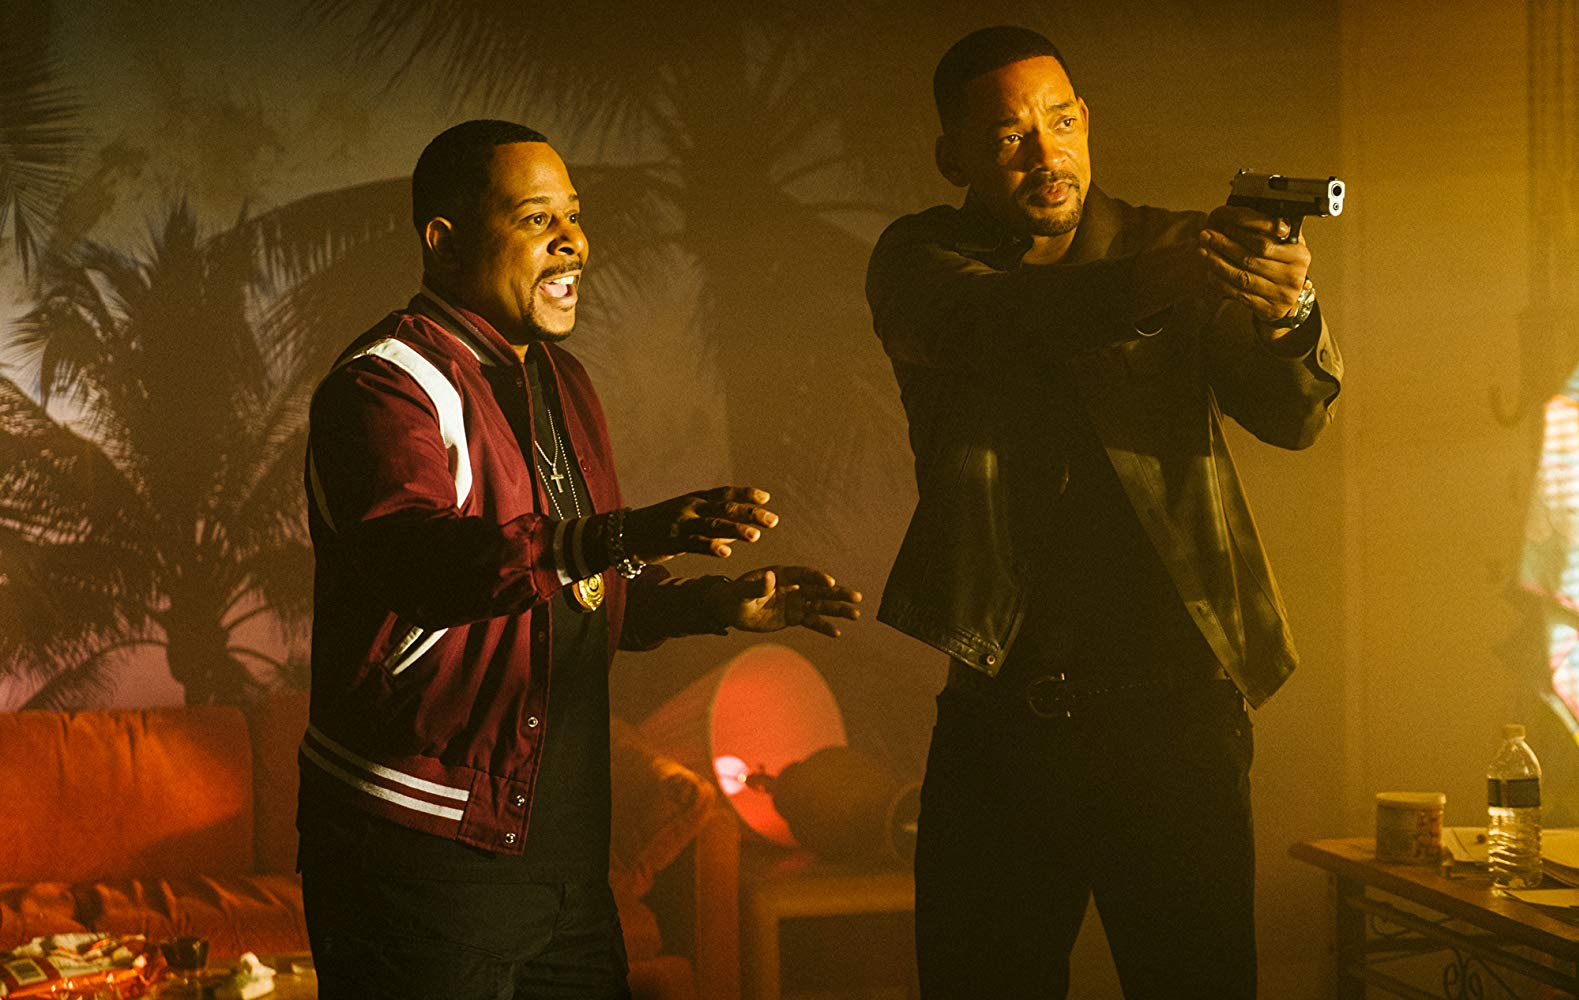 Bad Boys for Life breathes new life into the franchise